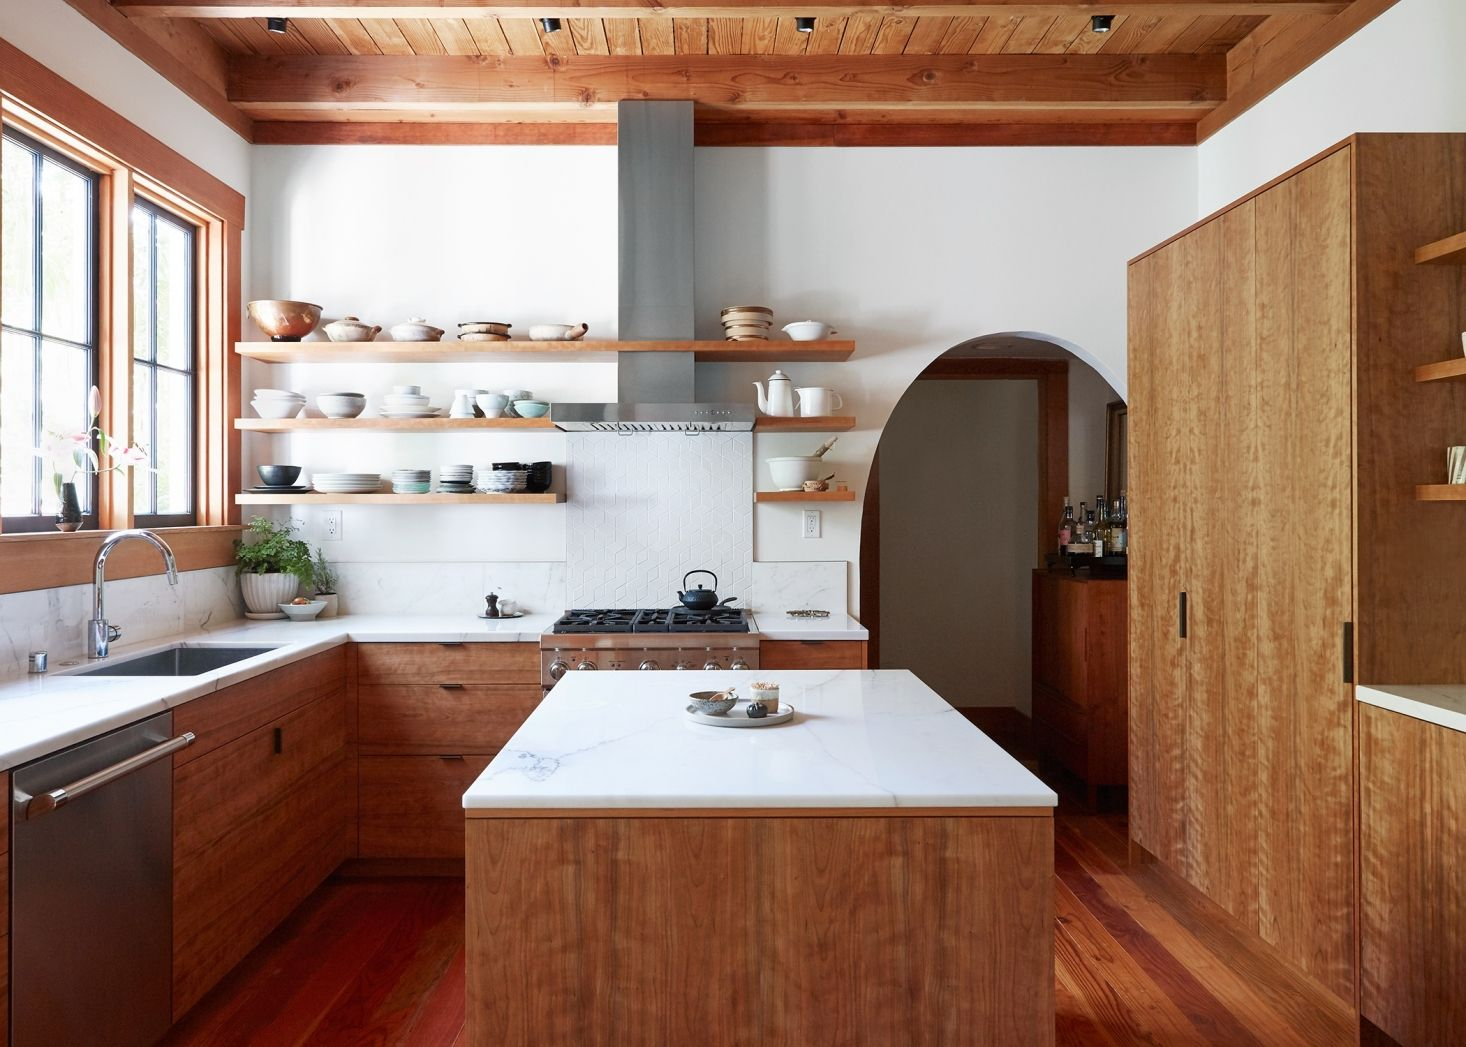 Trend Alert 9 Kitchens With Floor To Ceiling Cabinetry Remodelista Kitchen Remodel Hippie House Updating House